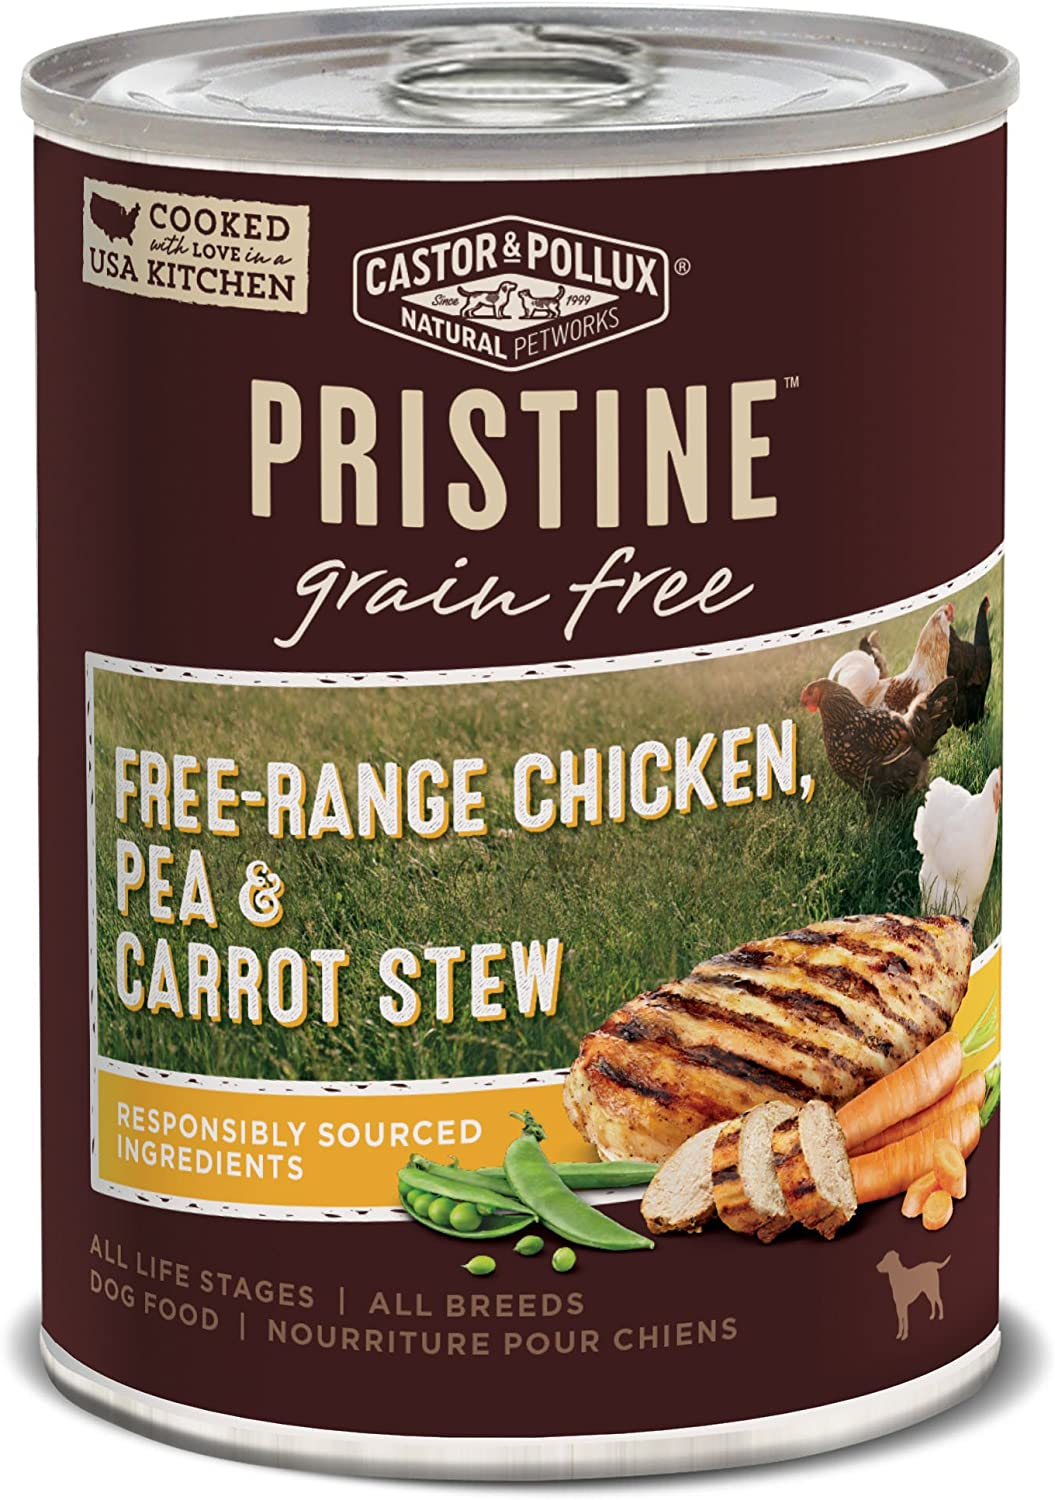 Castor & Pollux Pristine Grain Free Wet Dog Food Grass-Fed/Free-Range